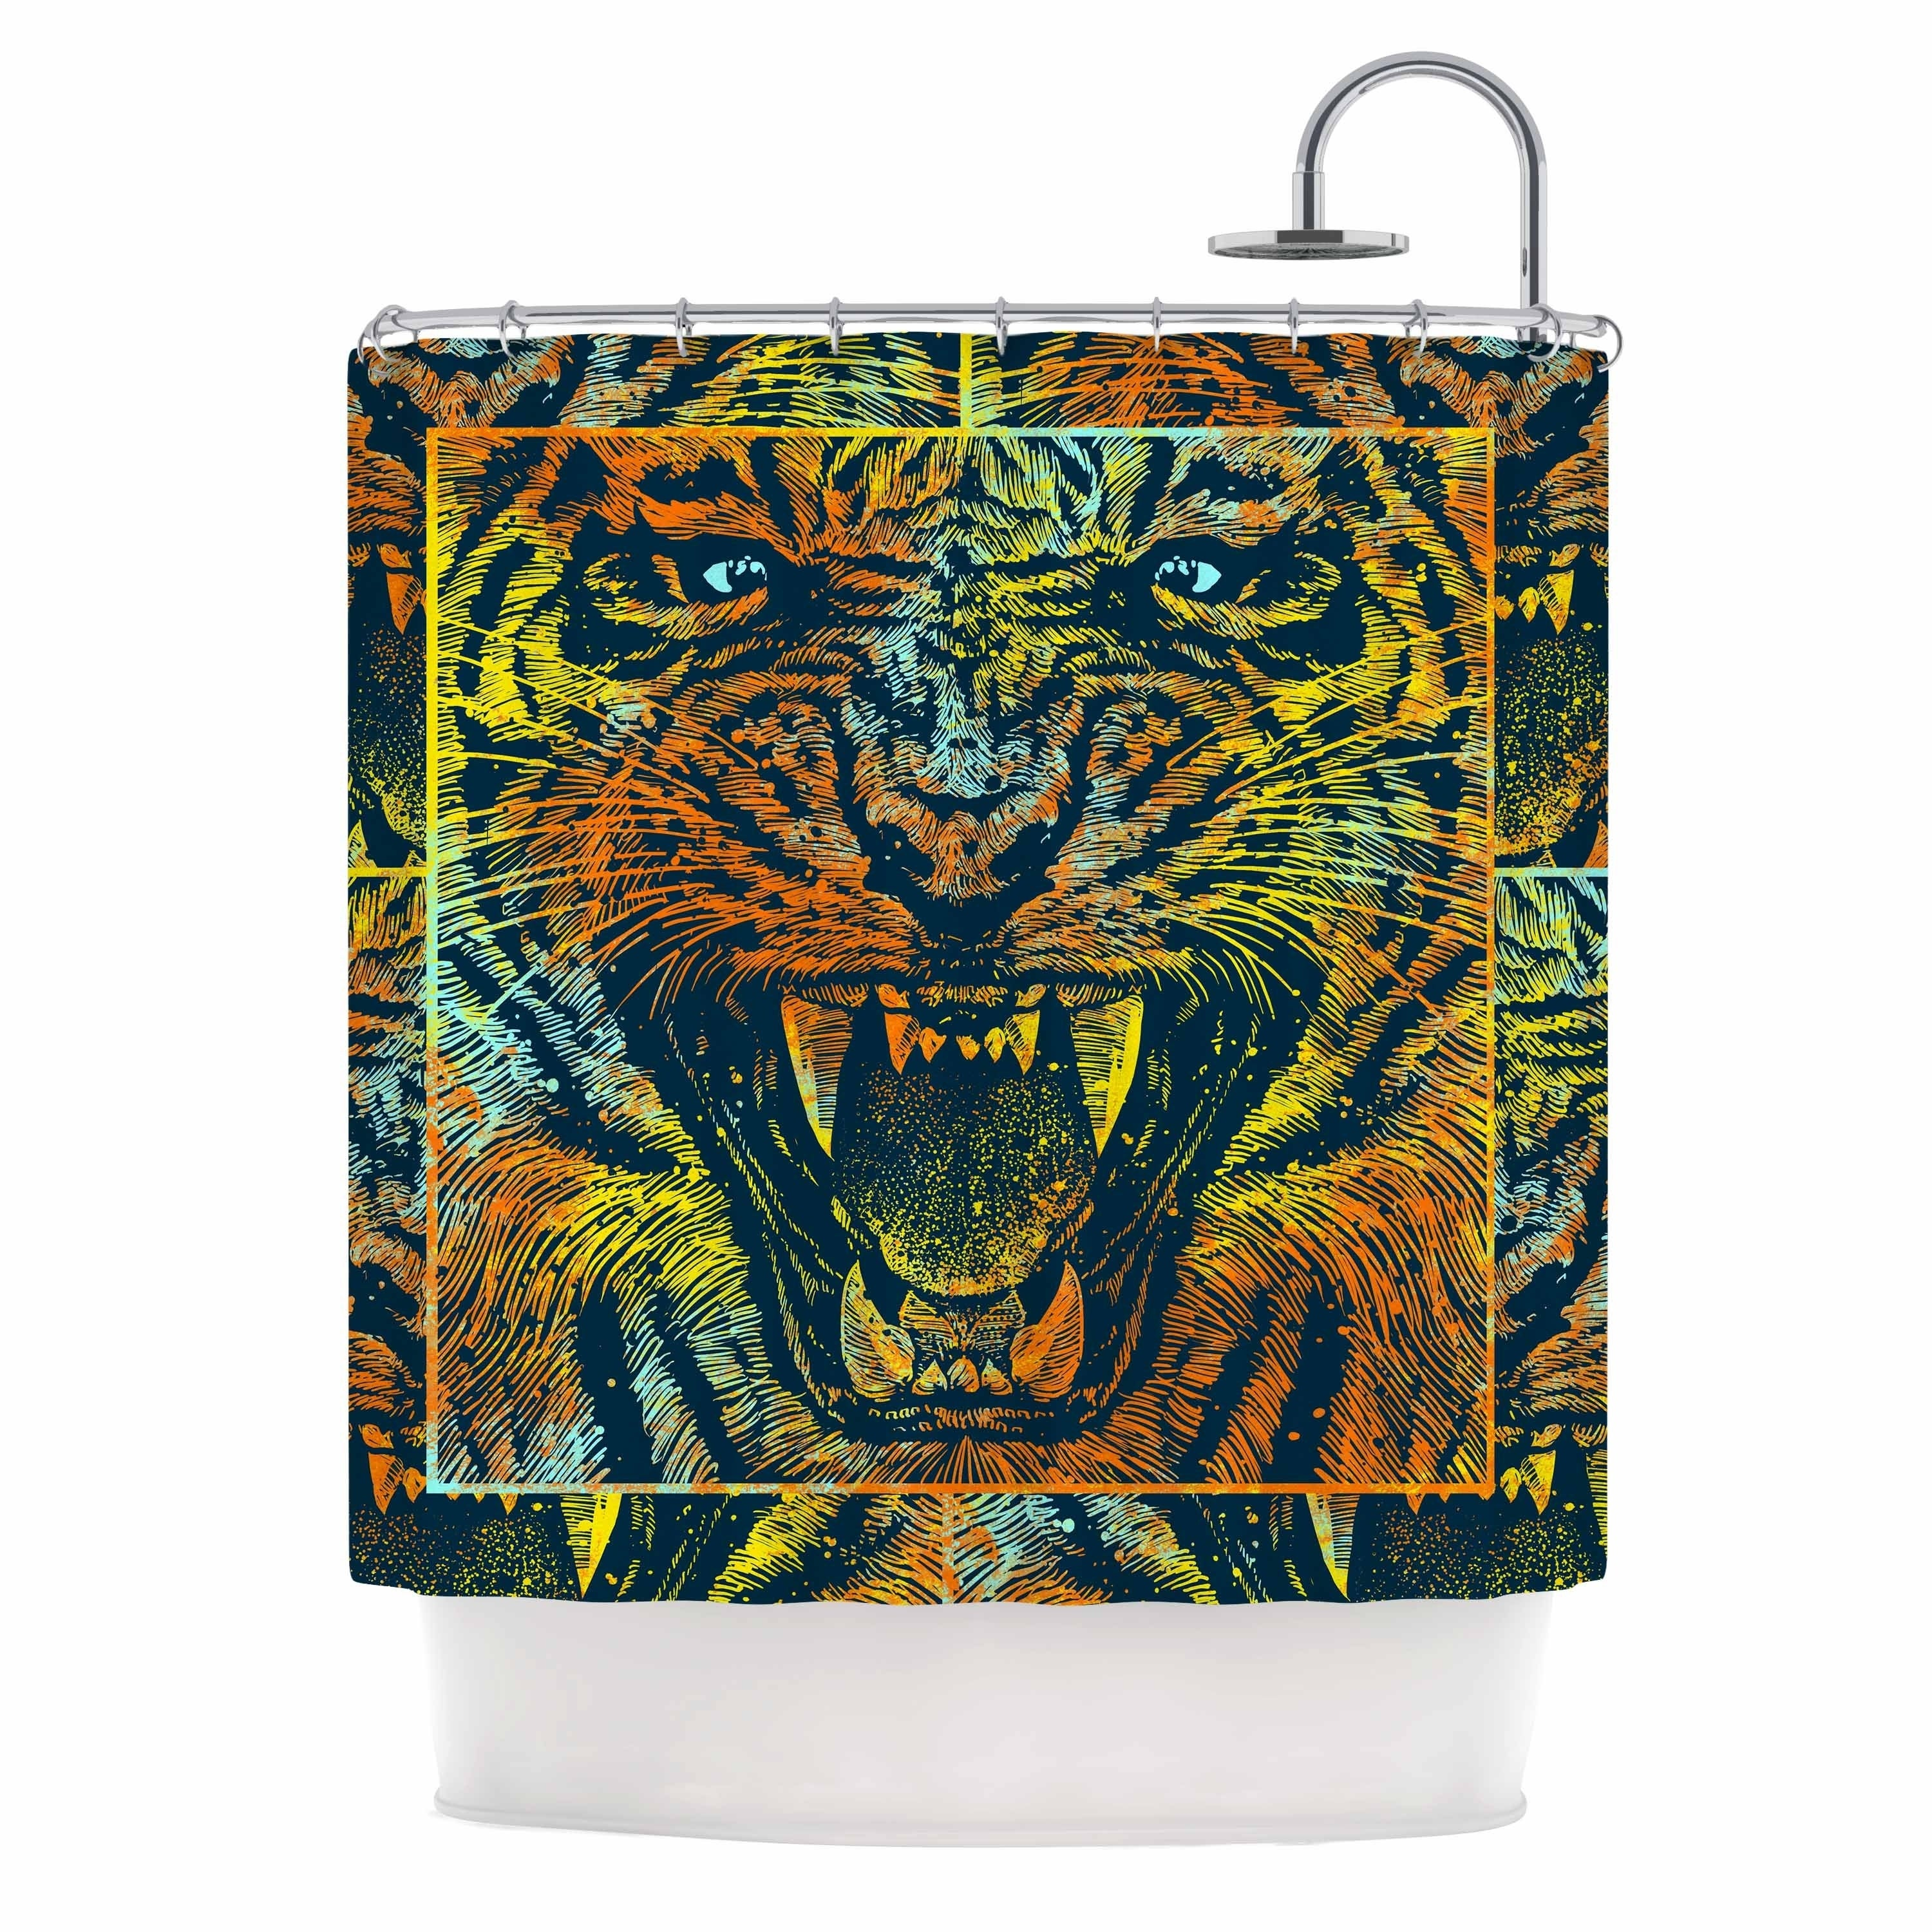 Close Tiger Waterproof Bathroom Polyester Shower Curtain Liner Water Resistant